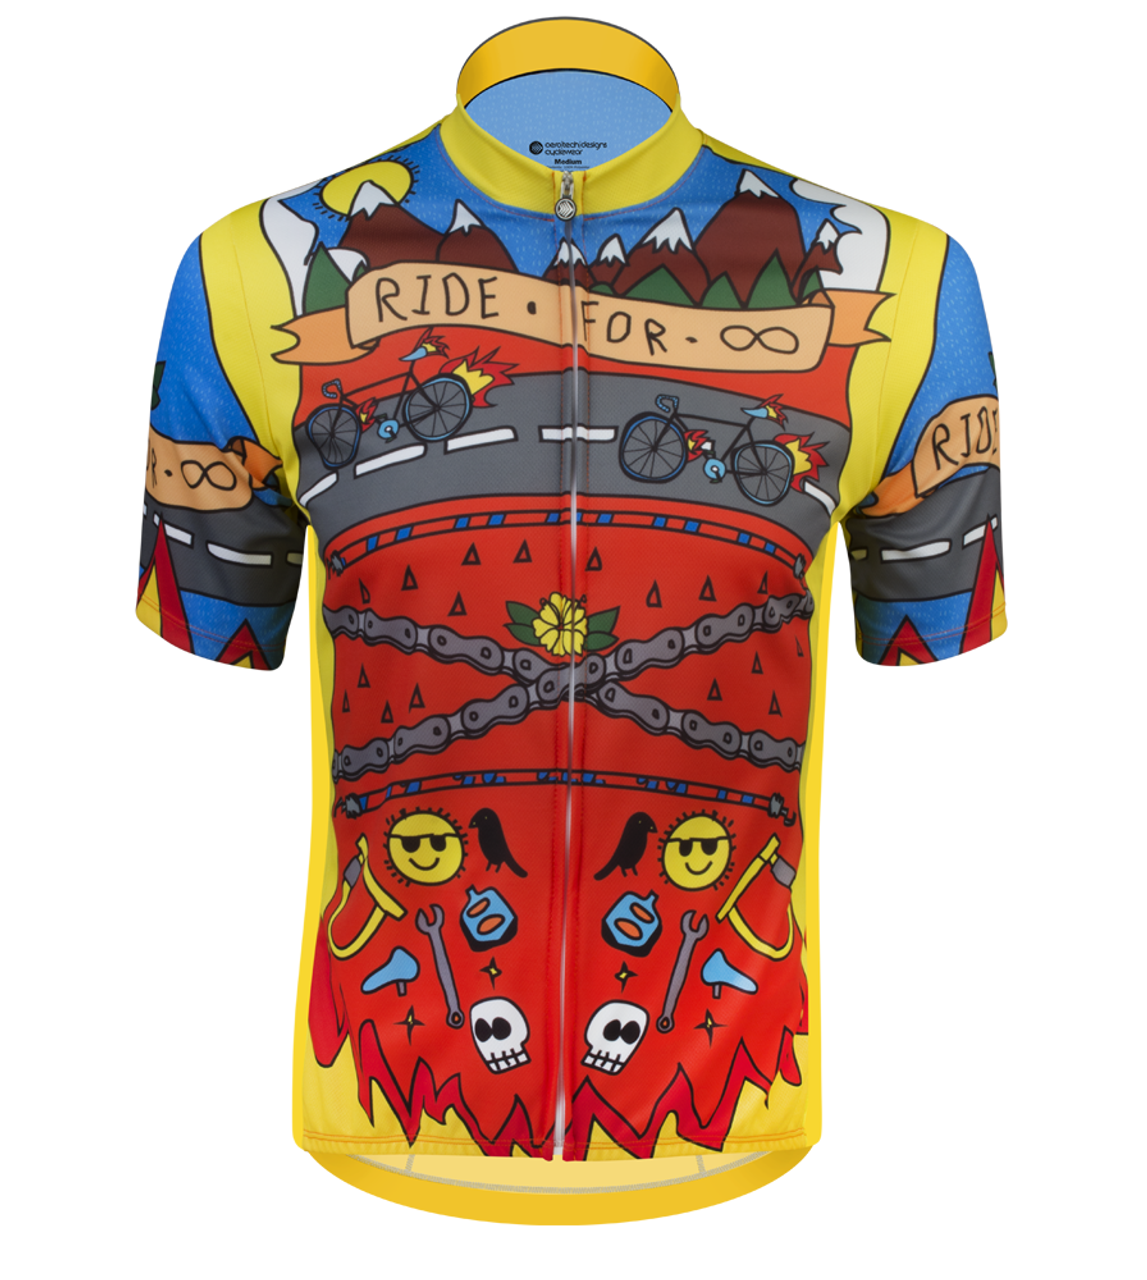 a1dbc909f Aero Tech Sprint Jersey - Ride for Infinity - Printed Cycling Jersey